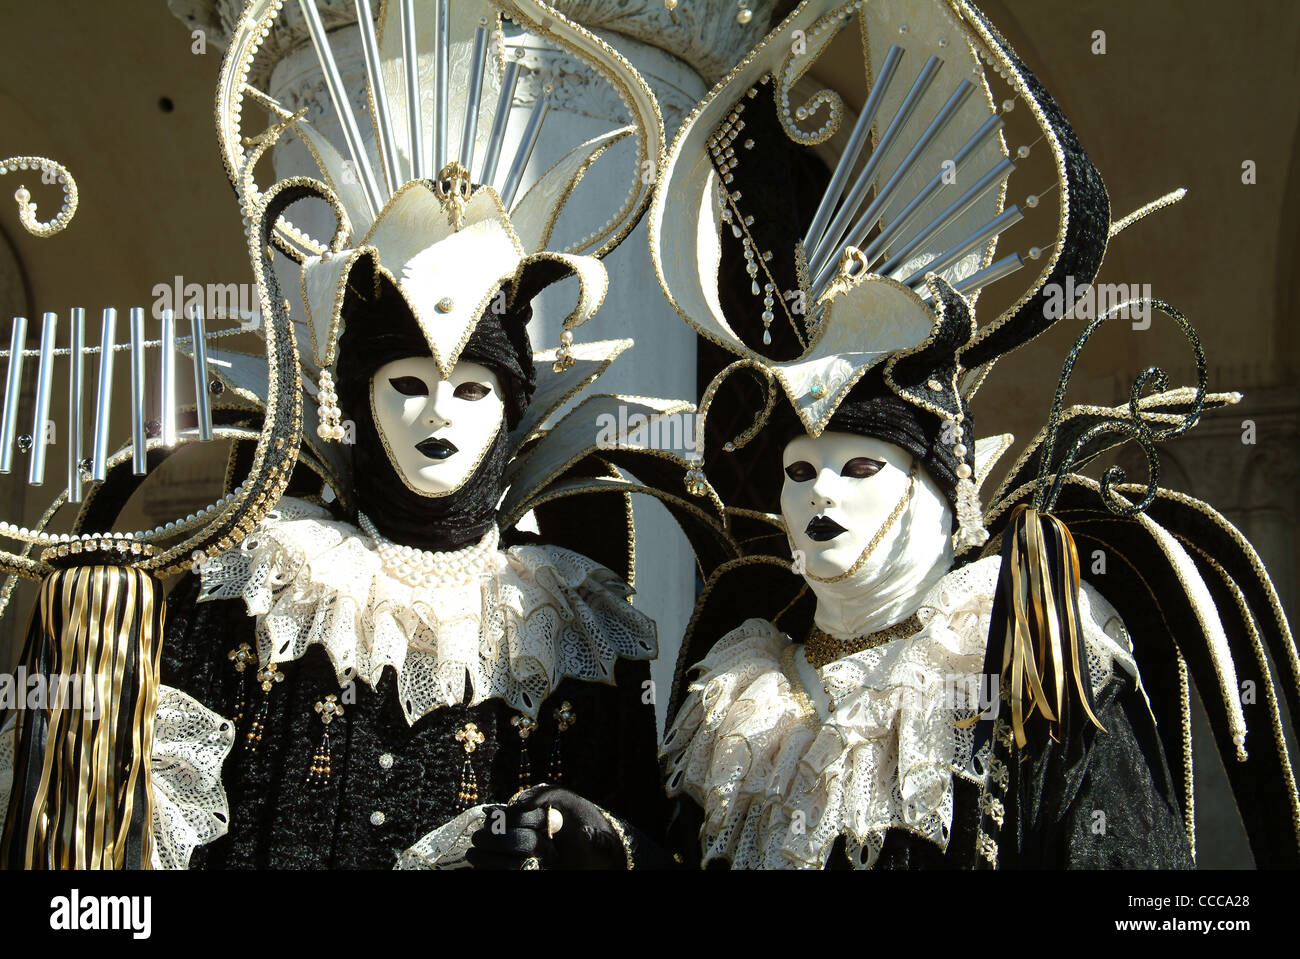 Venice Carnival, costumes and masks Stock Photo 42067936